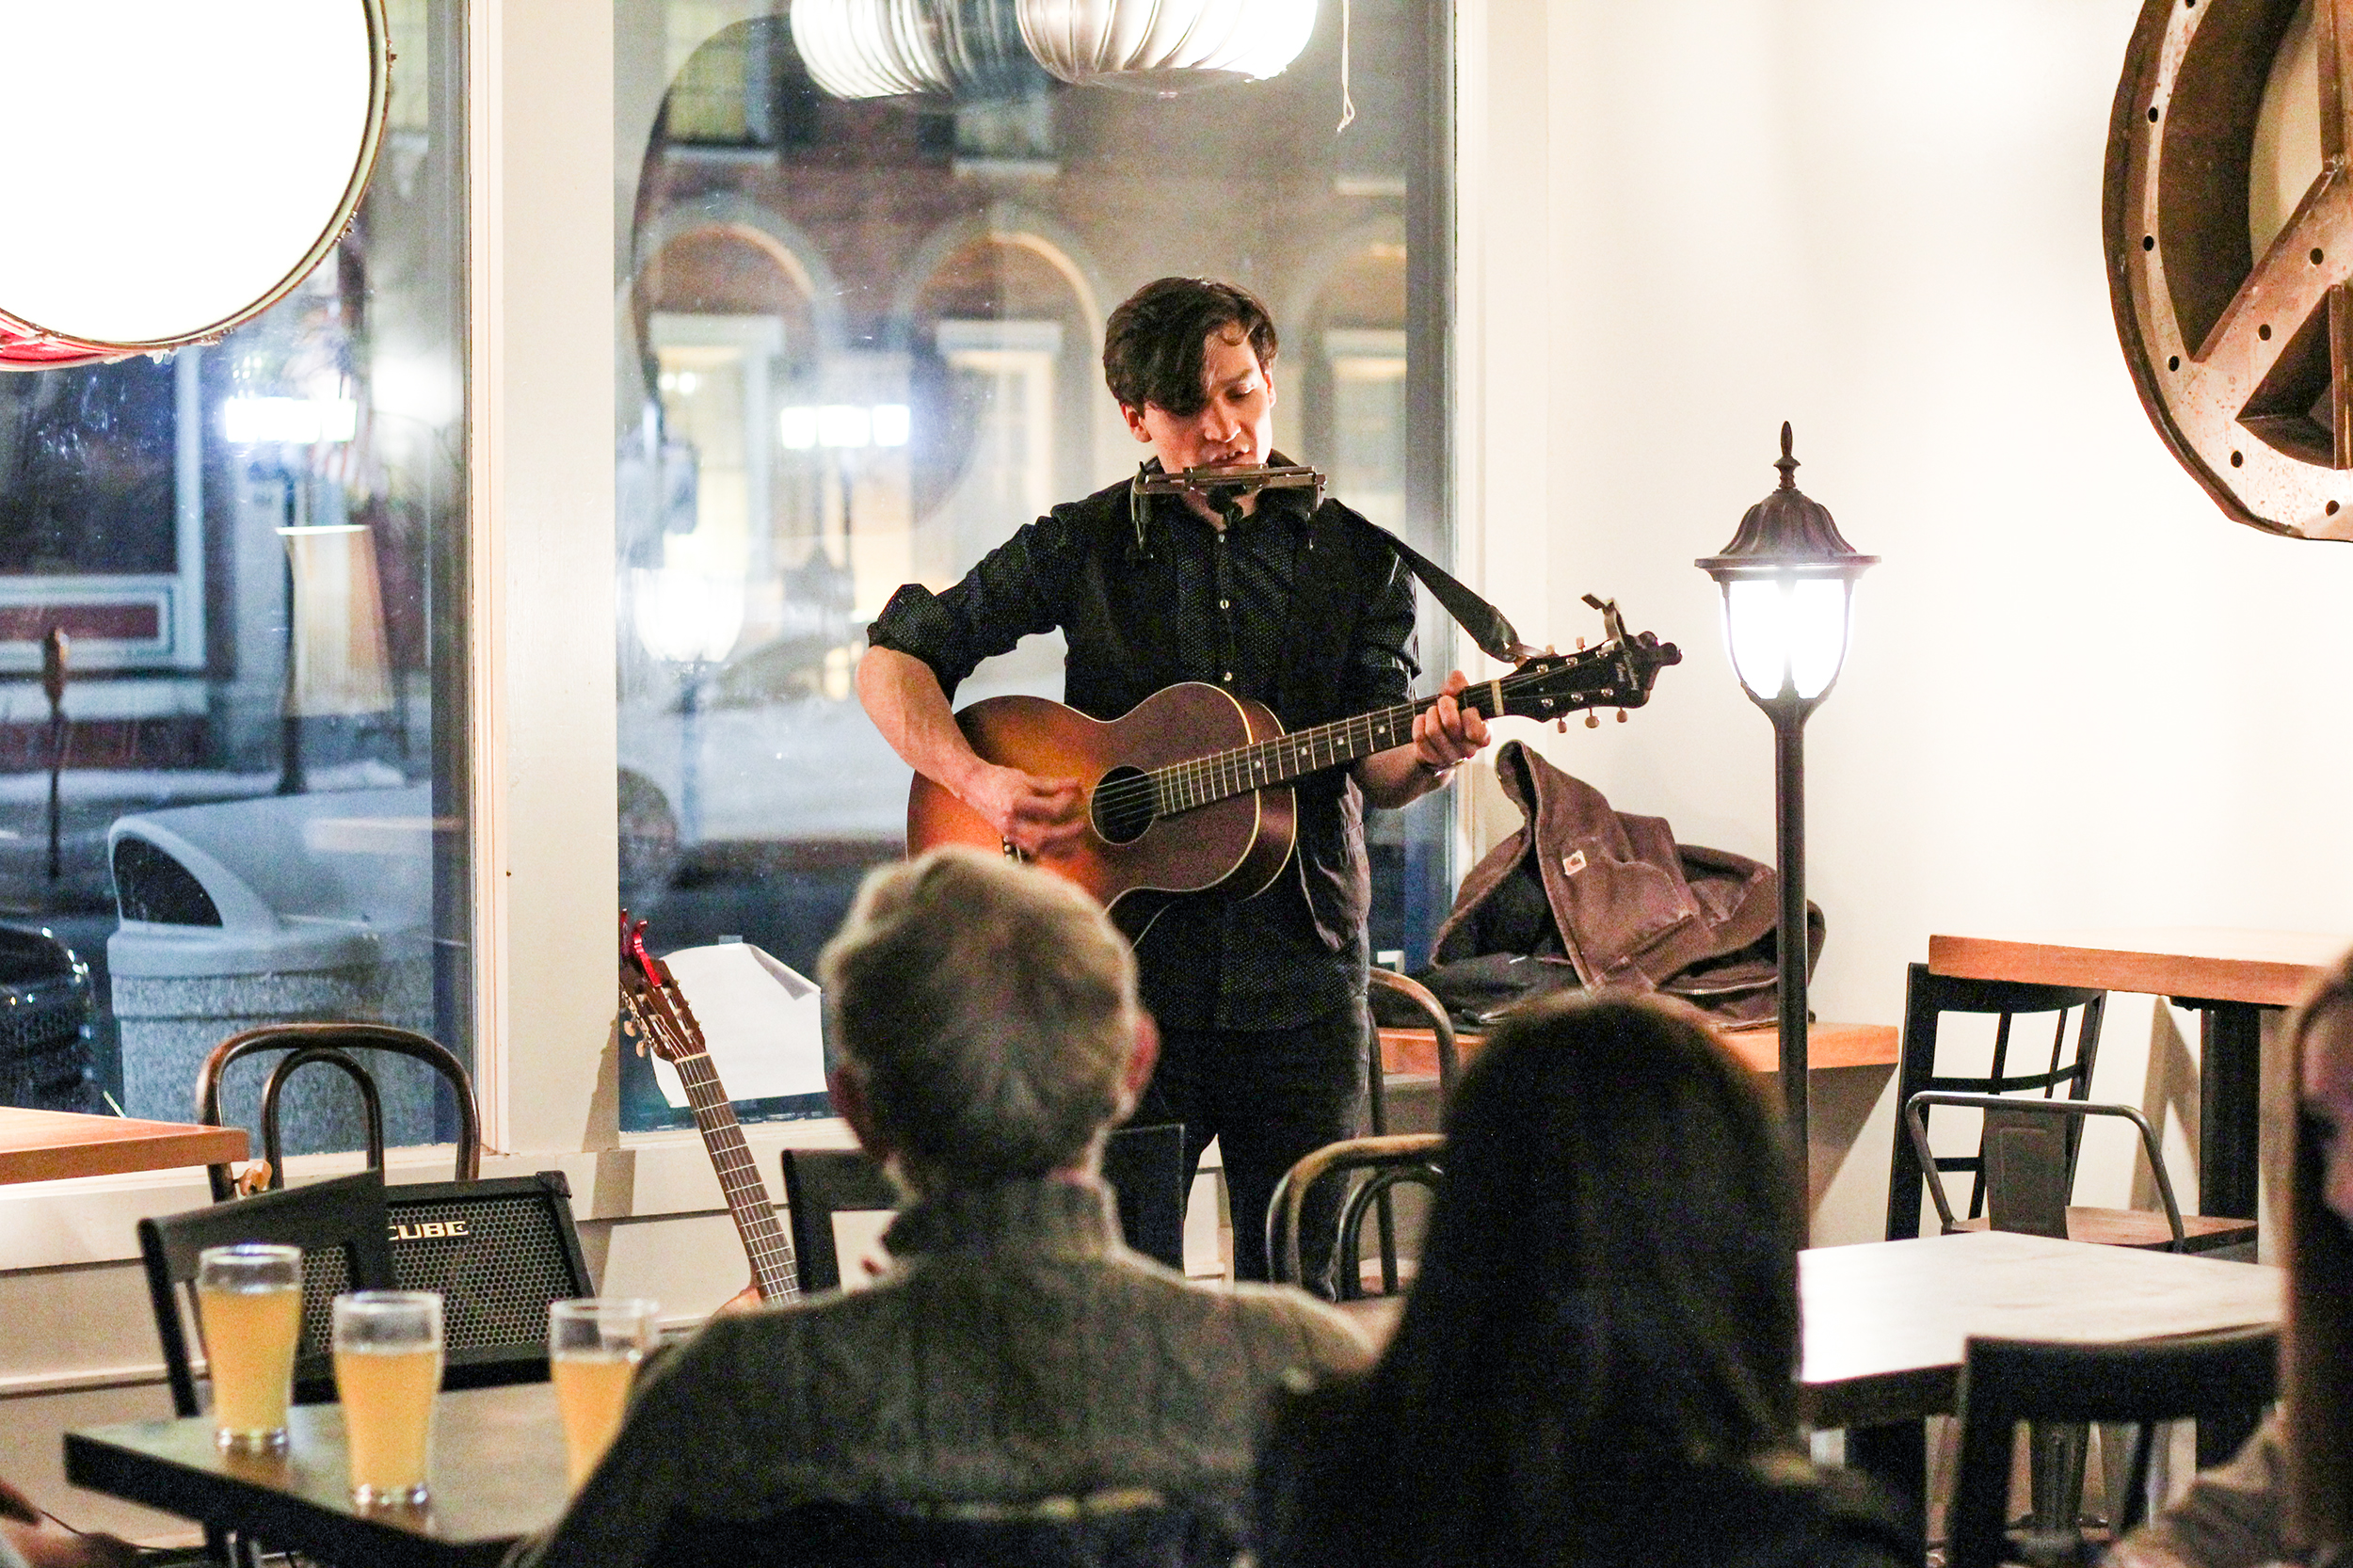 Jackson Cavalier (pictured above) performed at Crickets Coffee Company on Main Street on Thursday Feb. 21. Cavalier sings and plays instruments by himself to produce his folk music (Catherine White/editor-in-chief).